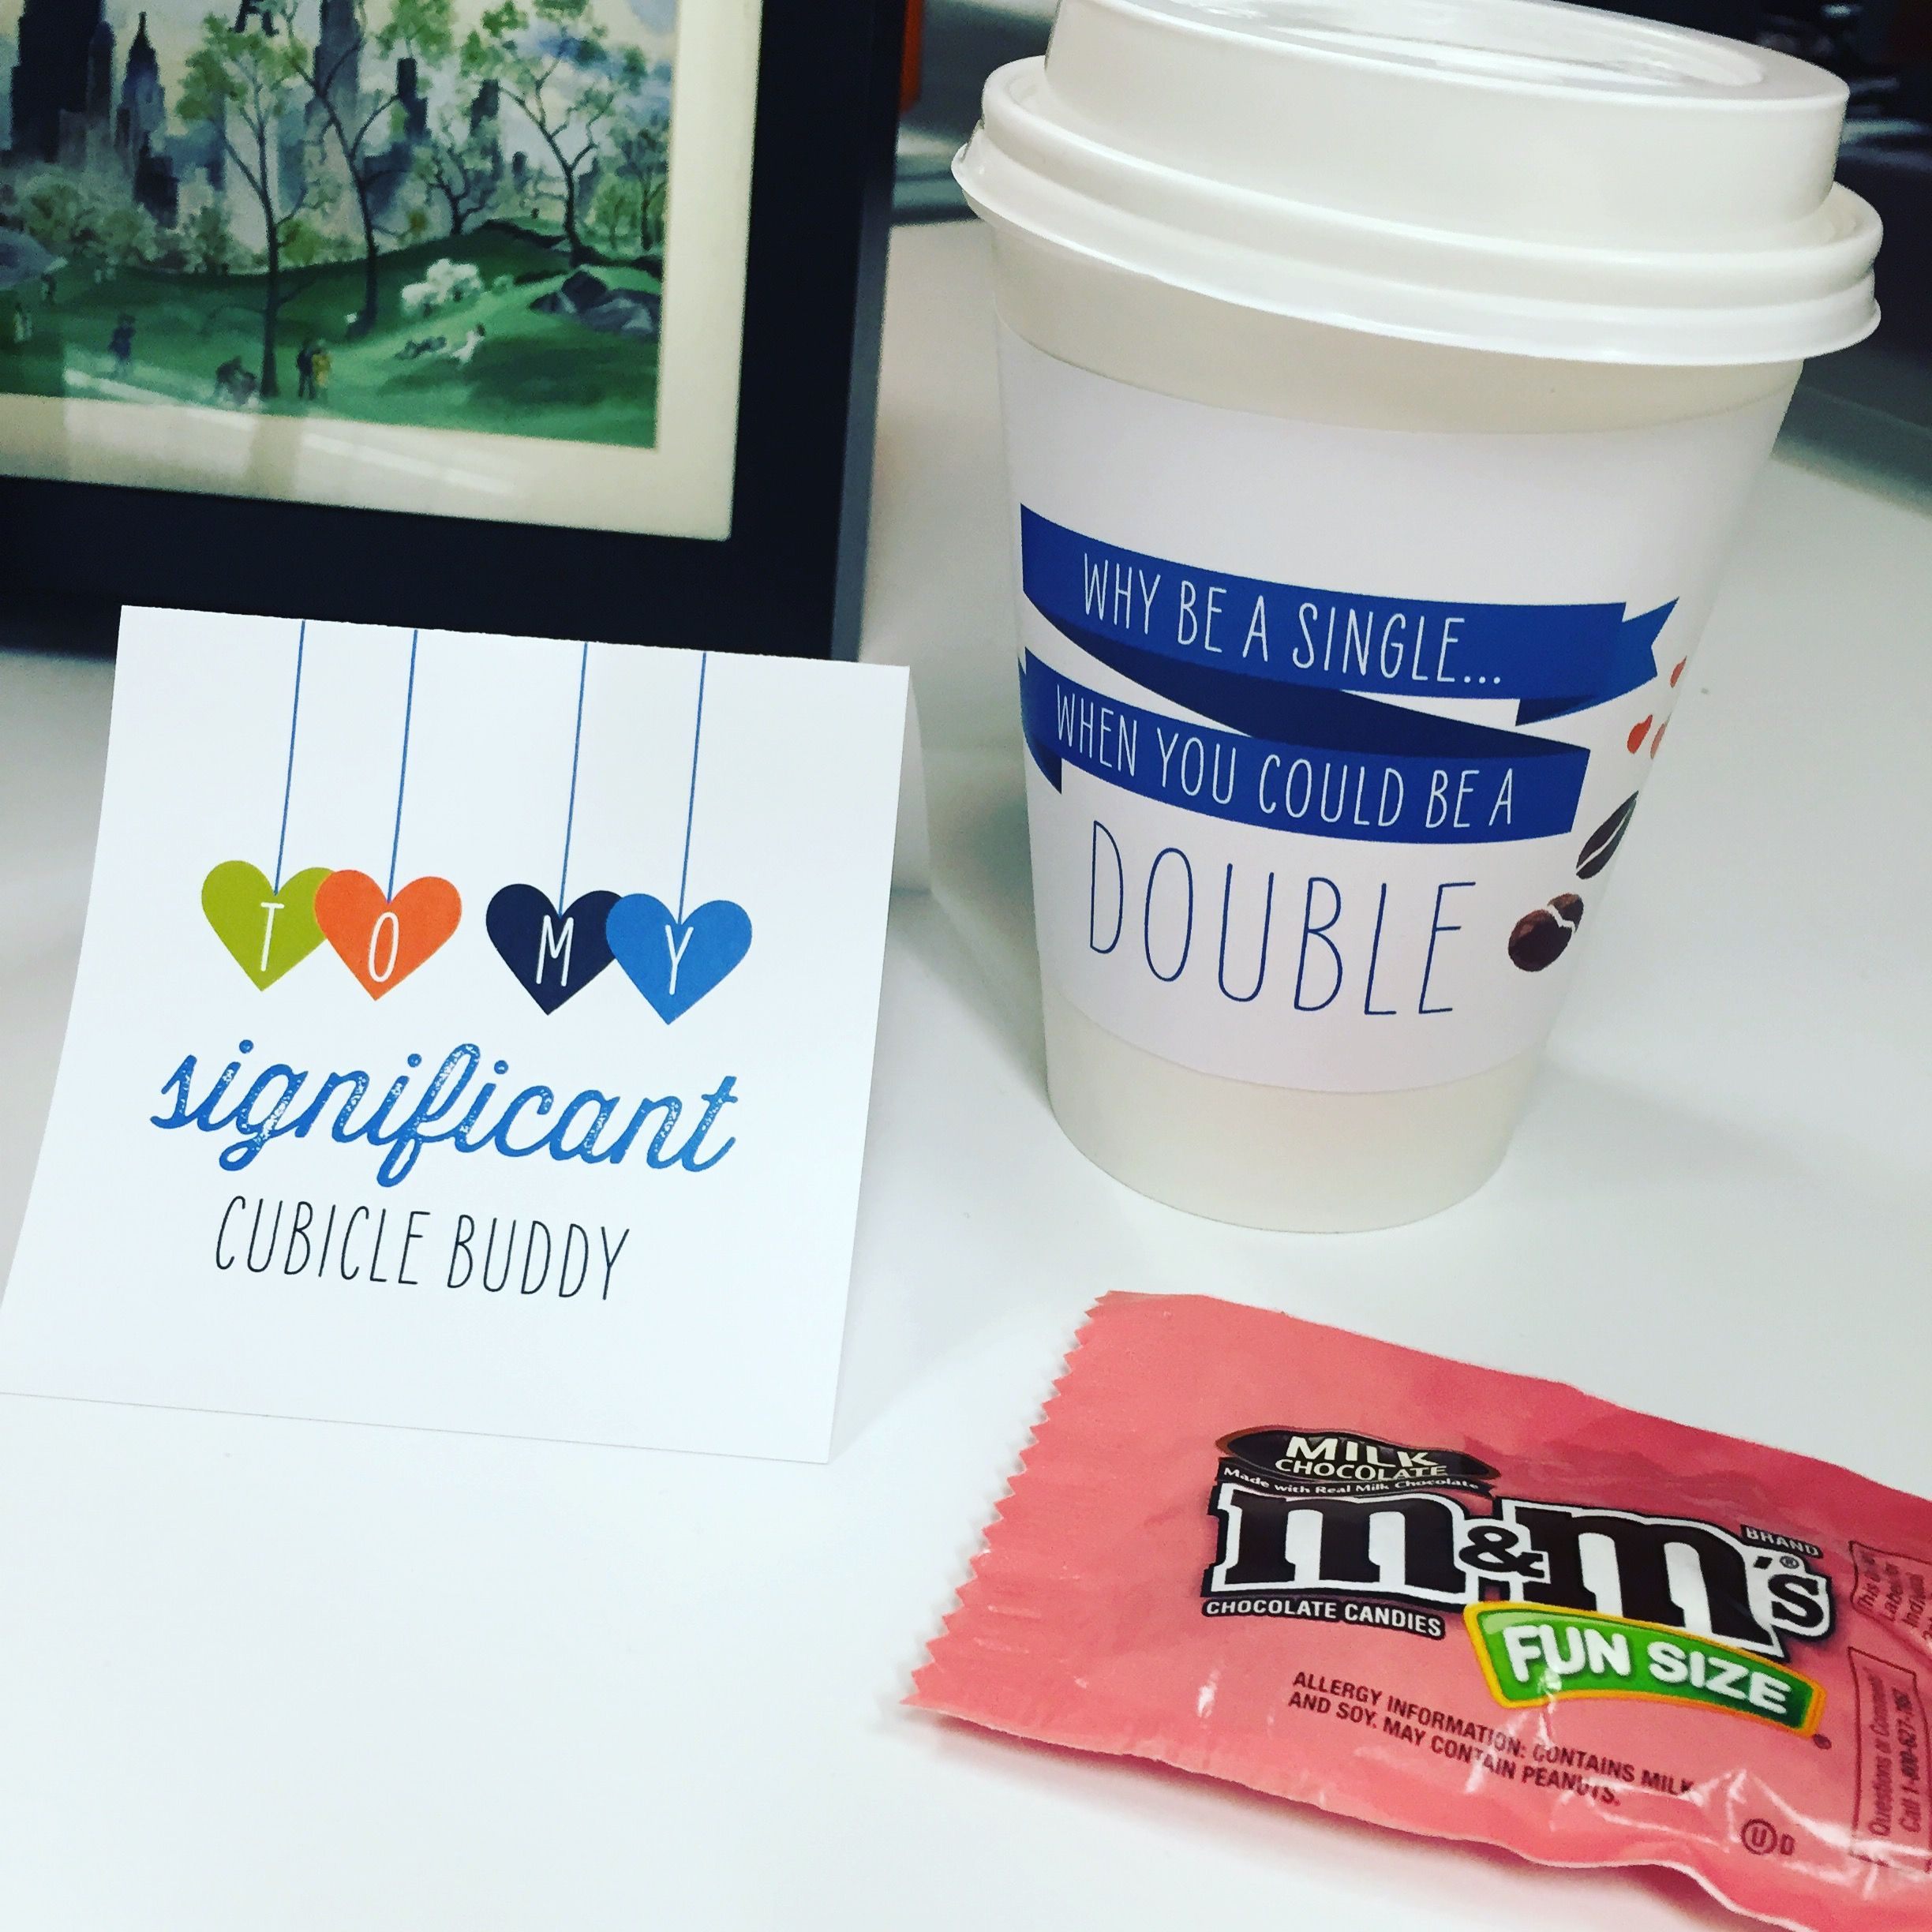 Cute office idea from Cornerstone Home Lending, Inc.! Print out one of these free valentine's day cards and leave them by your coworker's desk with some candy! Let your team know you care! :)